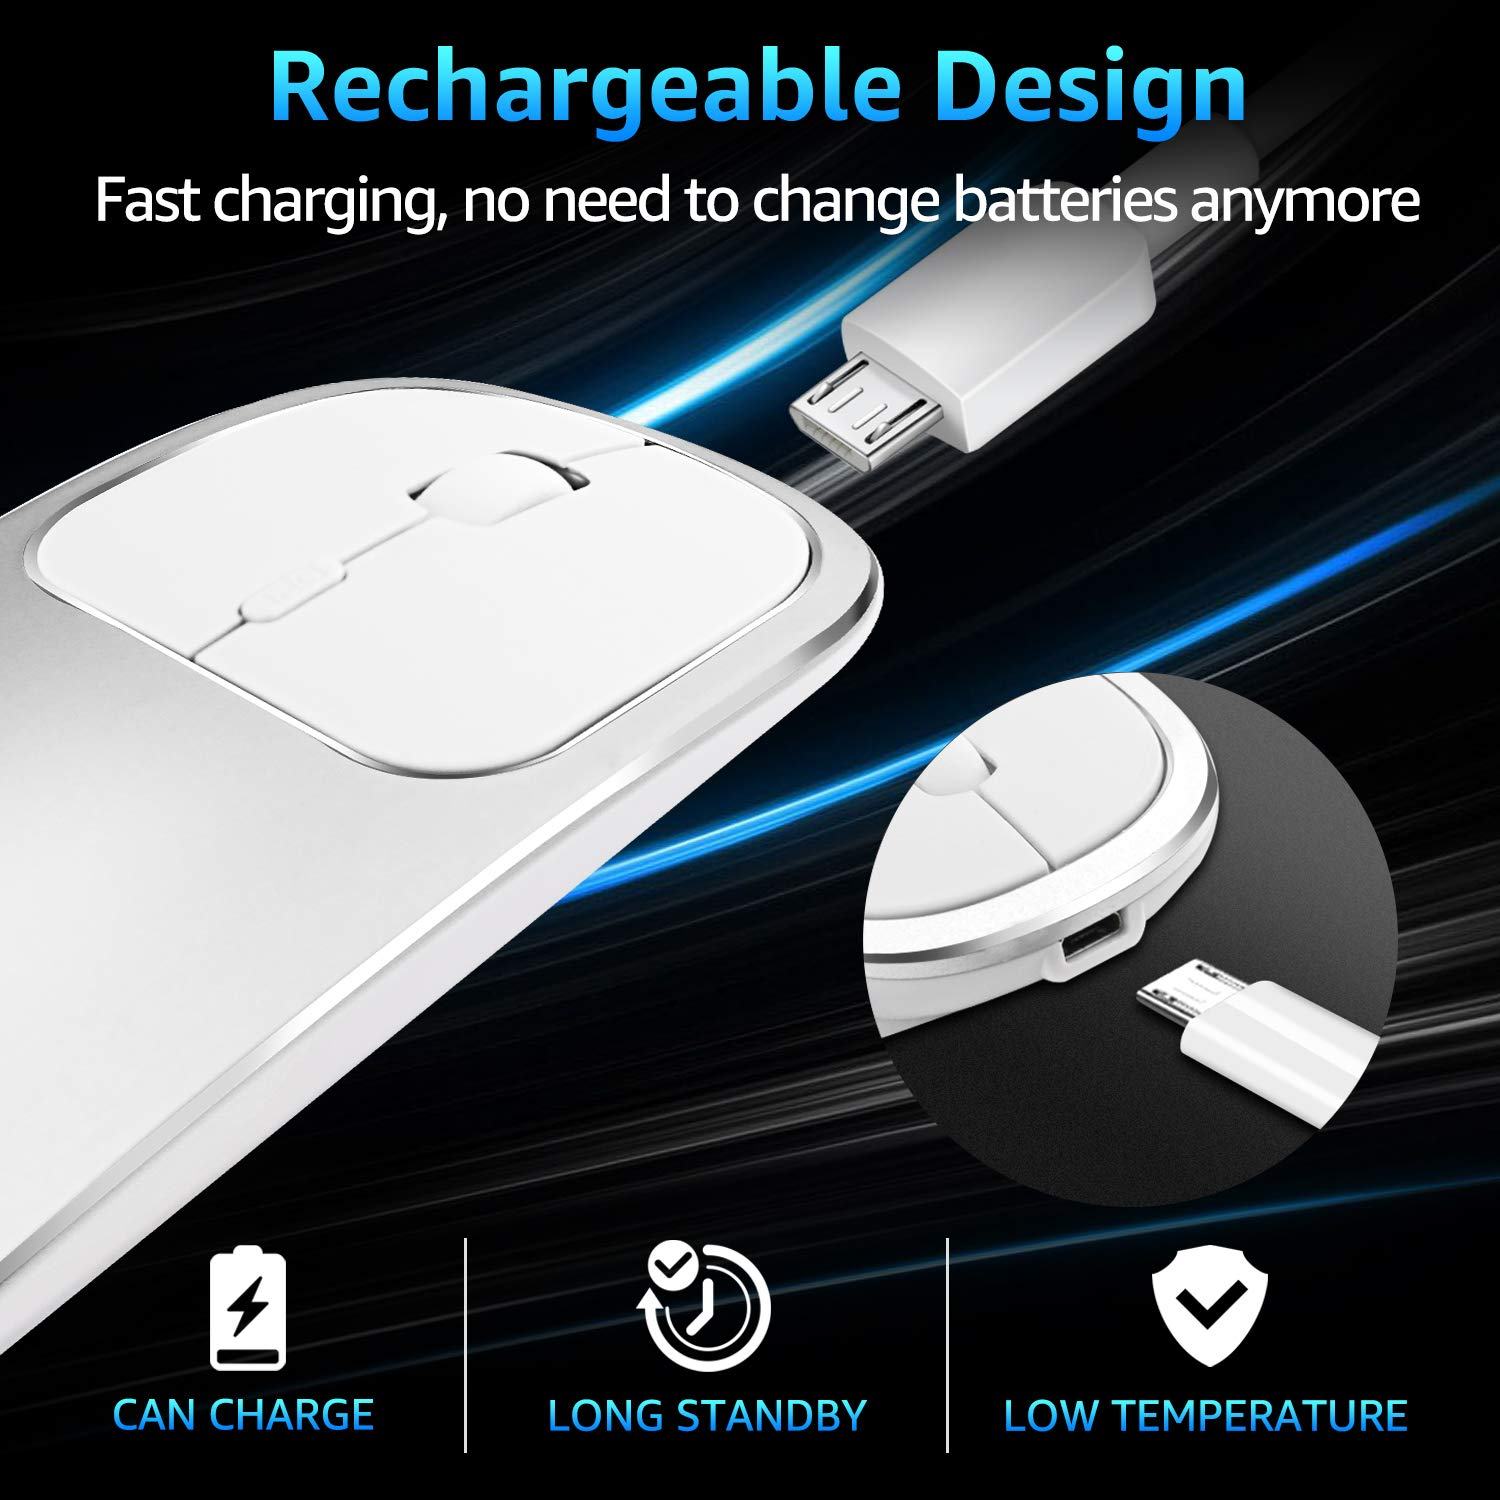 Wireless Mouse Laptop USB Type C Wireless Mouse Rechargeable 2.4GHZ Wireless Mouse Portable Slim Noiseless Click for Computer Windows 7/8/10/Vista/XP/MacBook,1600 DPI Mouse, Energy Saving (Silver)